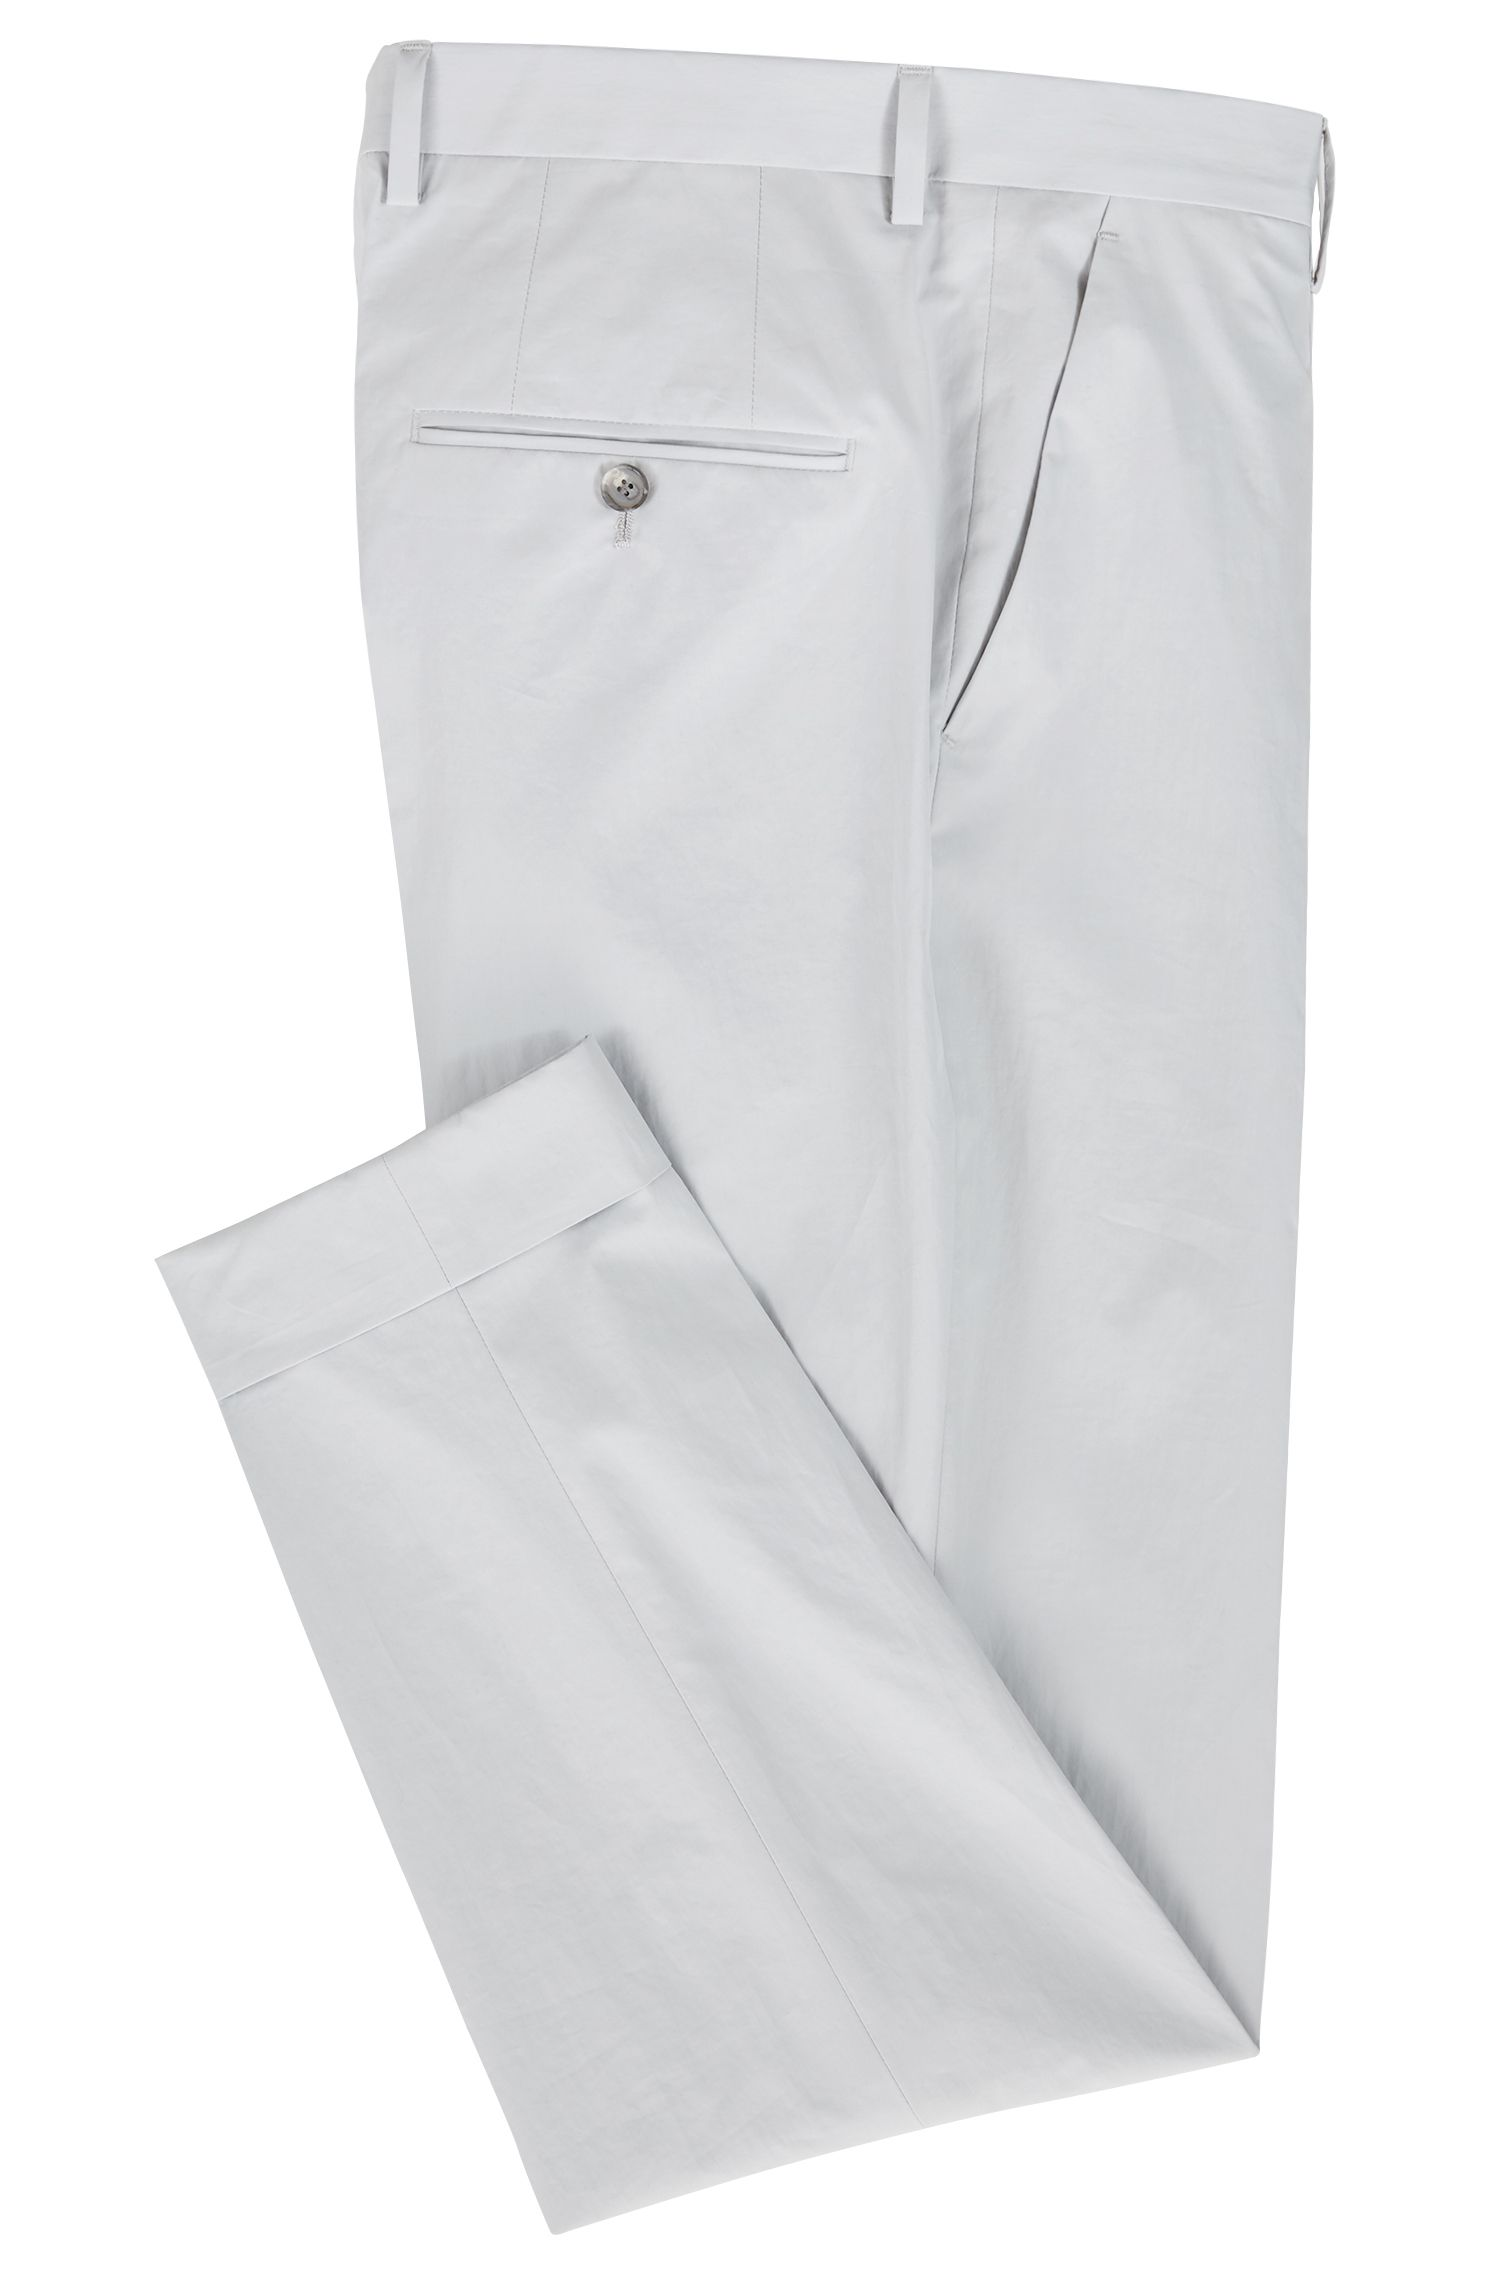 Relaxed-Fit Hose aus Baumwolle in Cropped-Länge mit Paper-Touch-Finish, Hellgrau